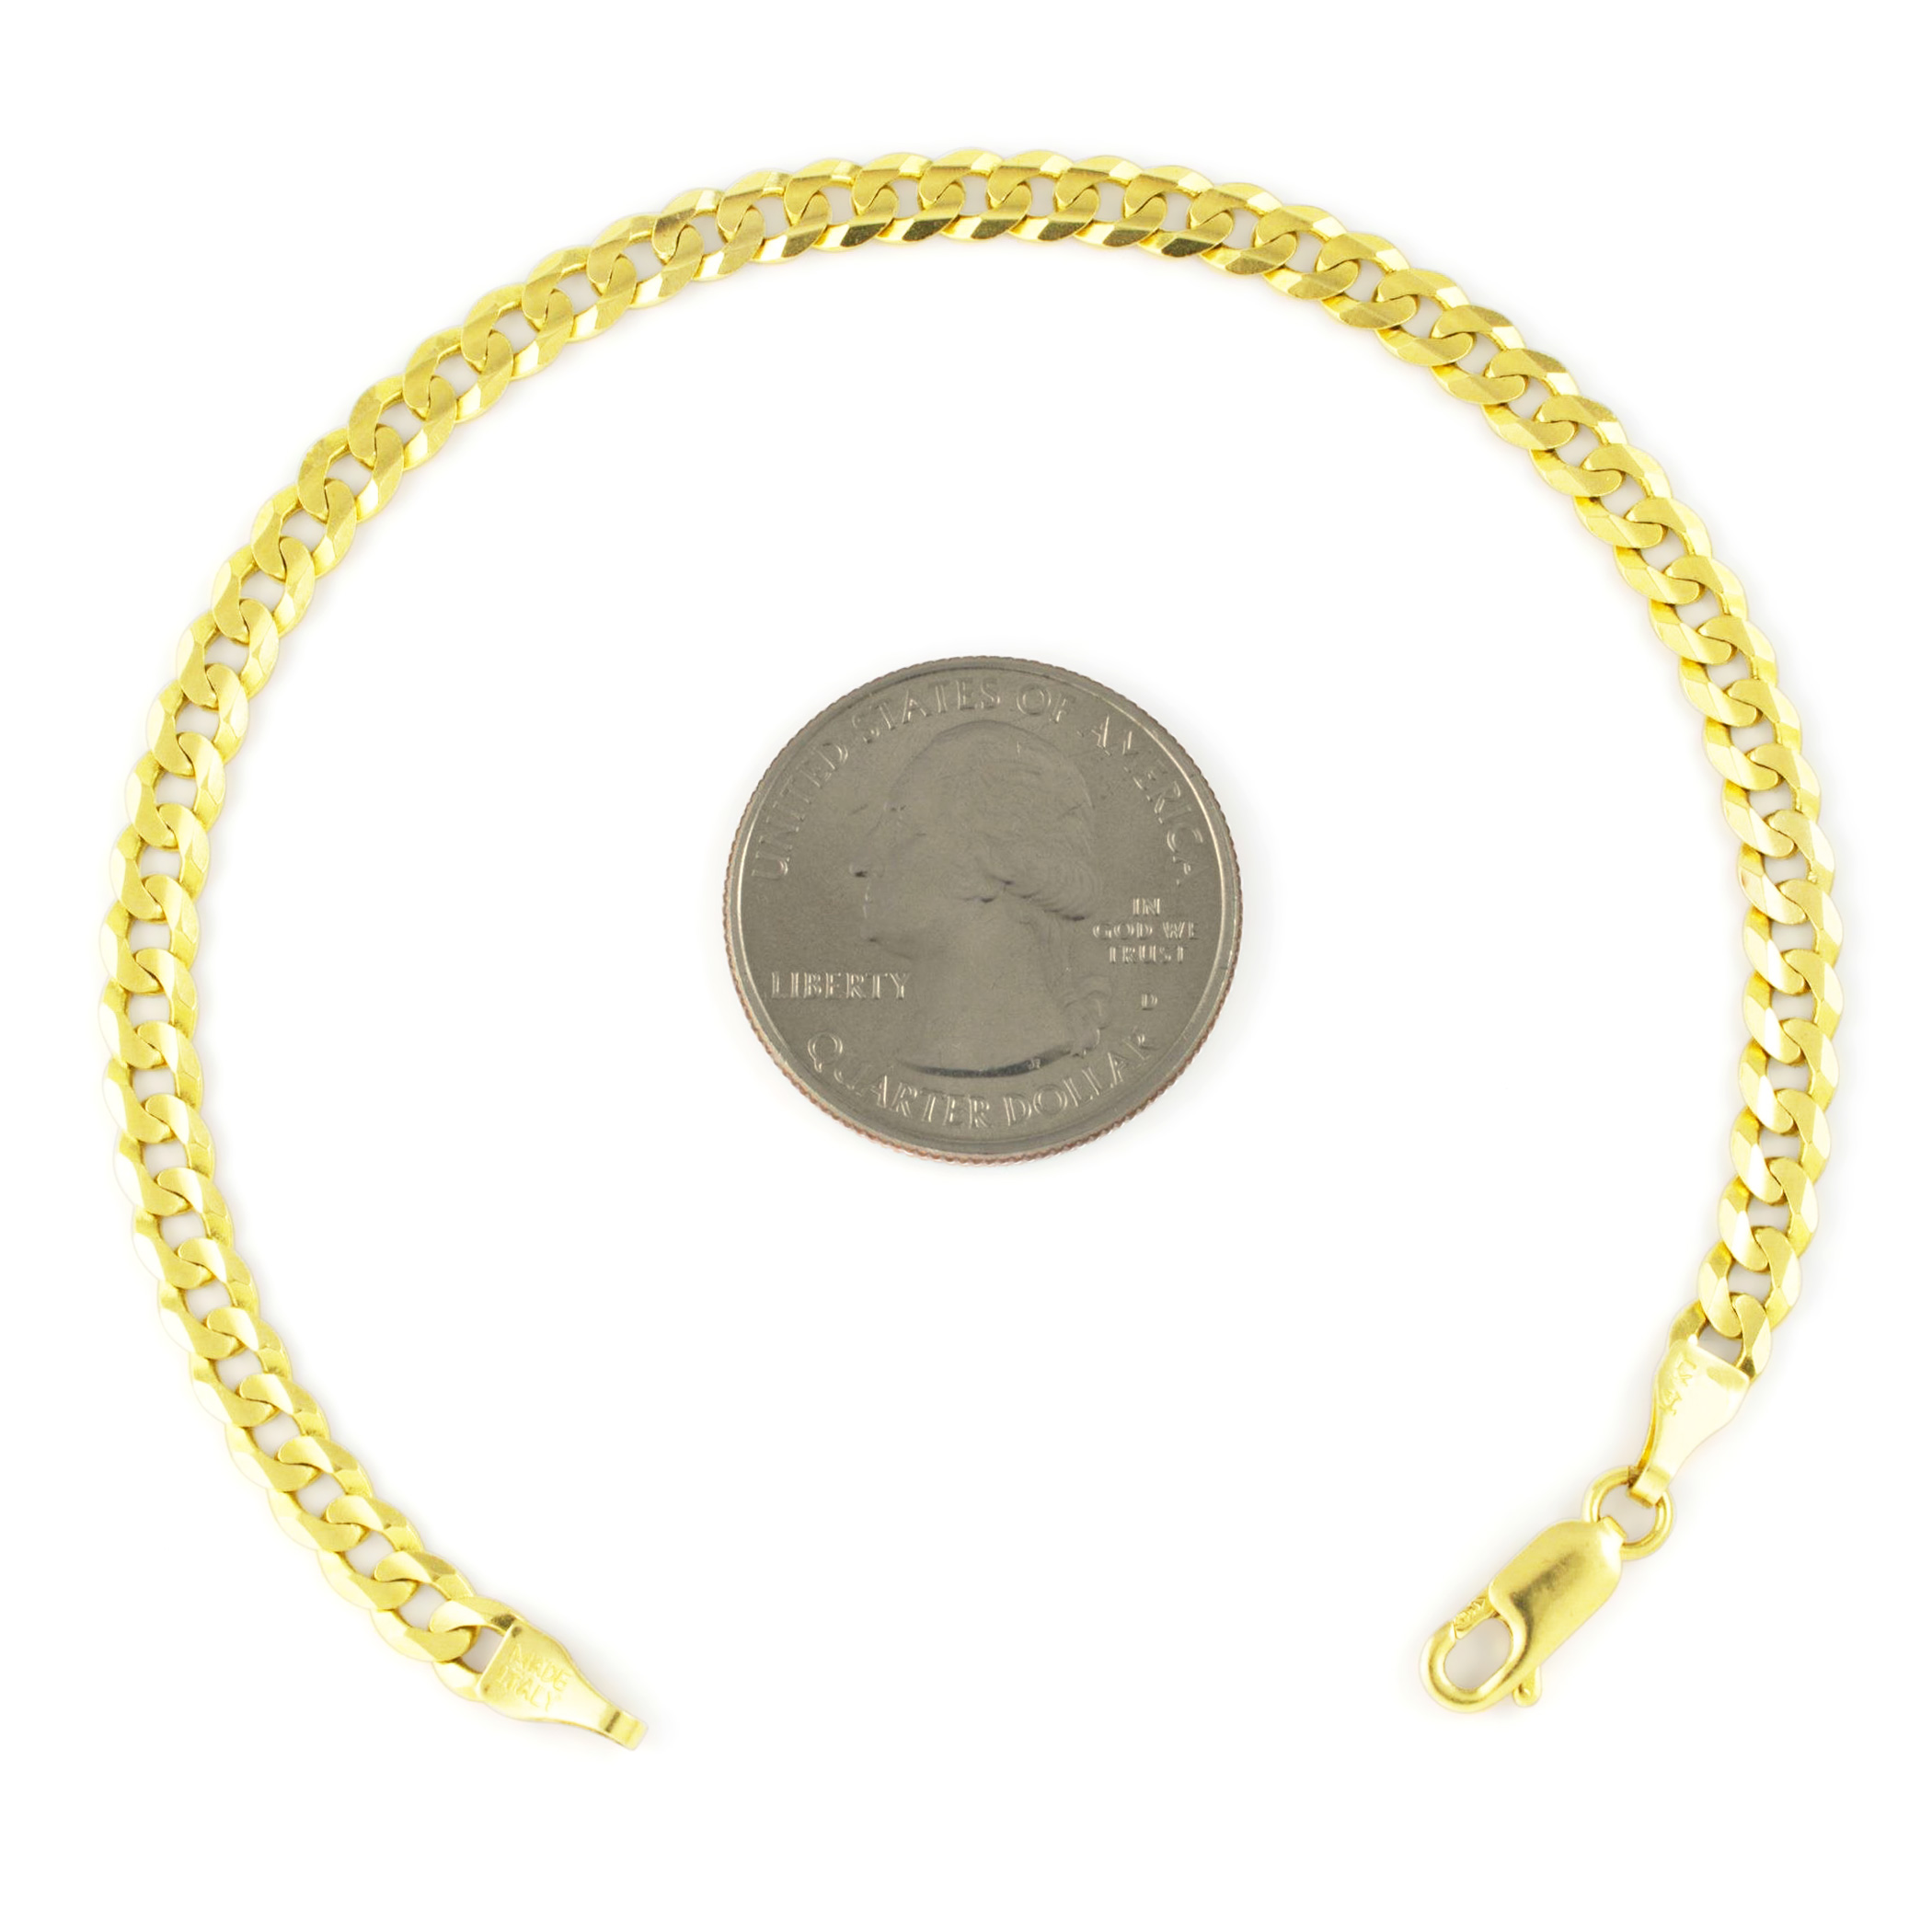 Real-14K-Yellow-Gold-4-5mm-Cuban-Curb-Chain-Link-Bracelet-Anklet-Chain-7-034-8-034-9-034 thumbnail 15